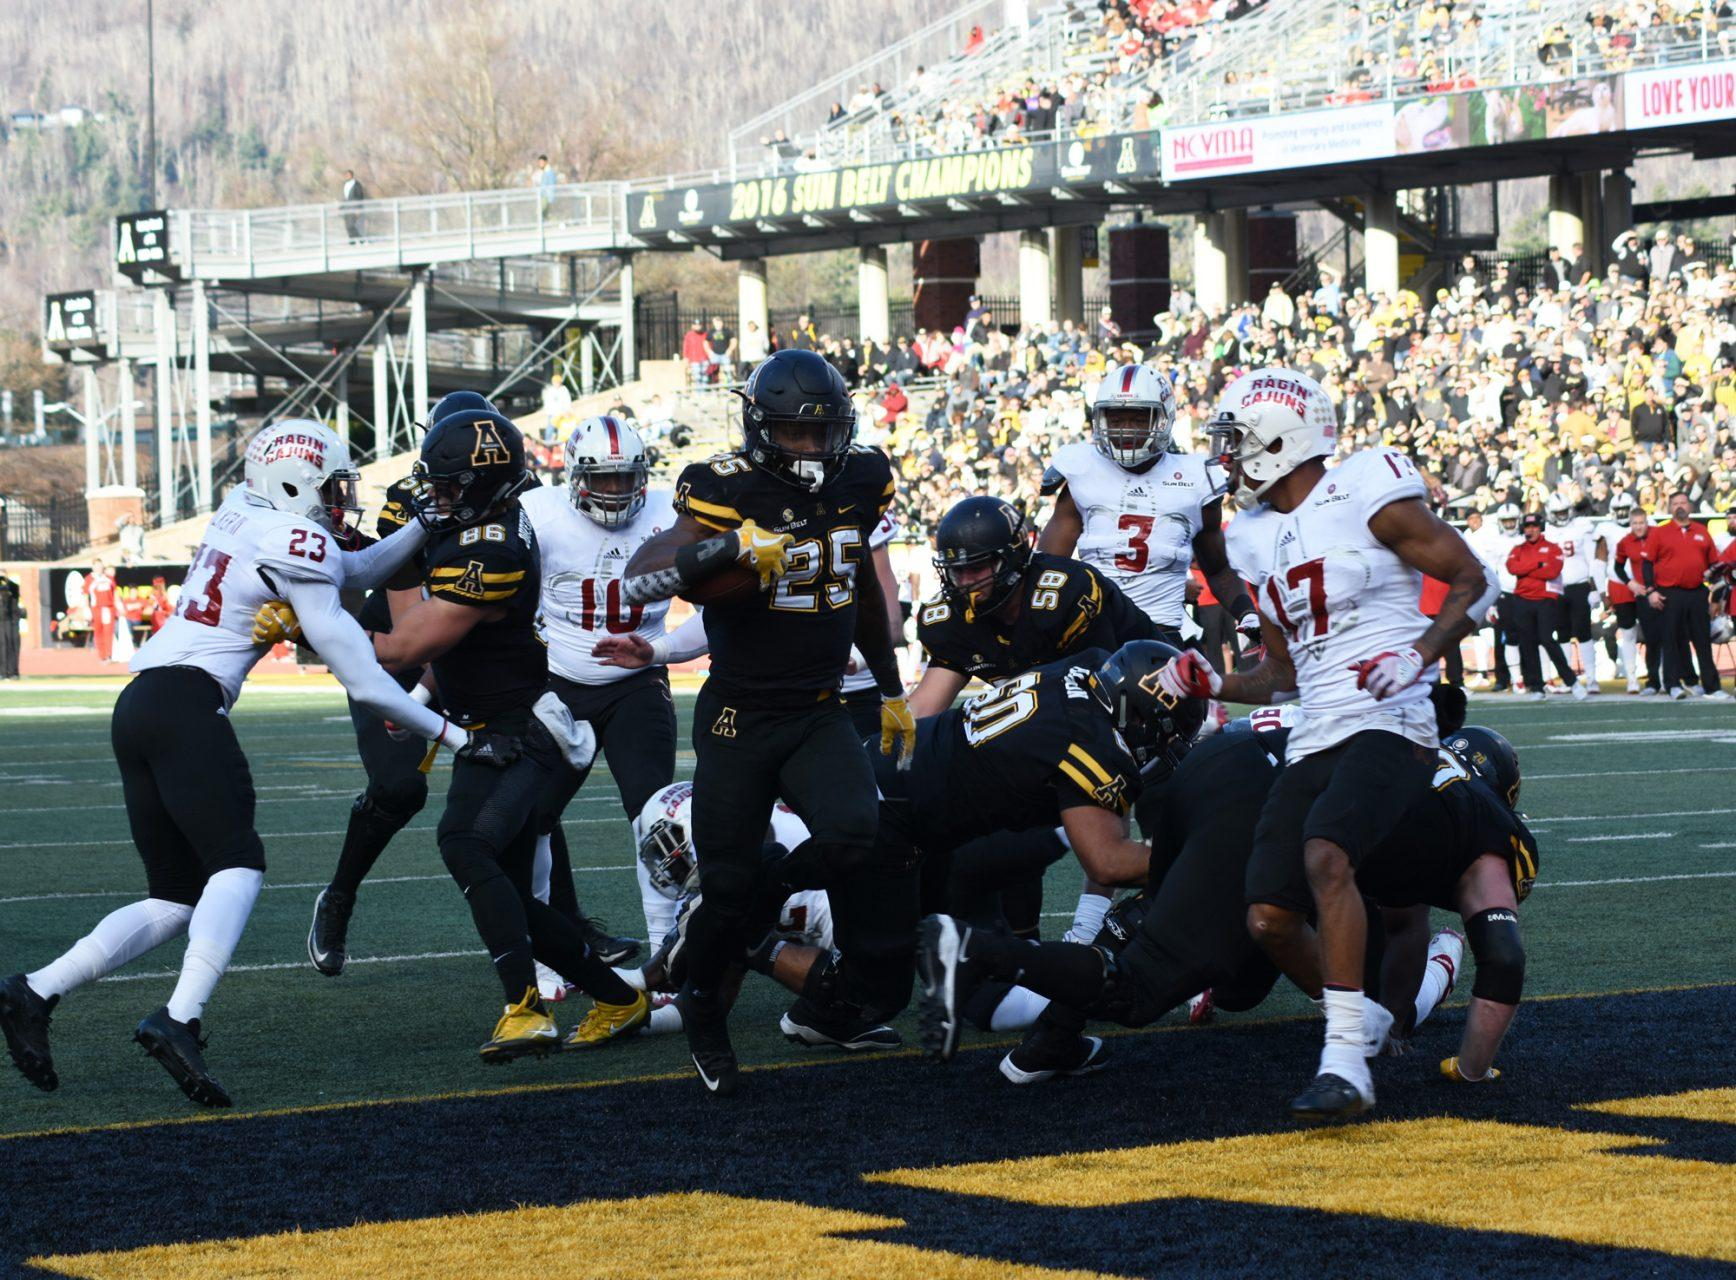 App State running back Jalin Moore scores a  touchdown against Louisiana. App State defeats Louisiana 63-14  at Kidd Brewer Stadium.